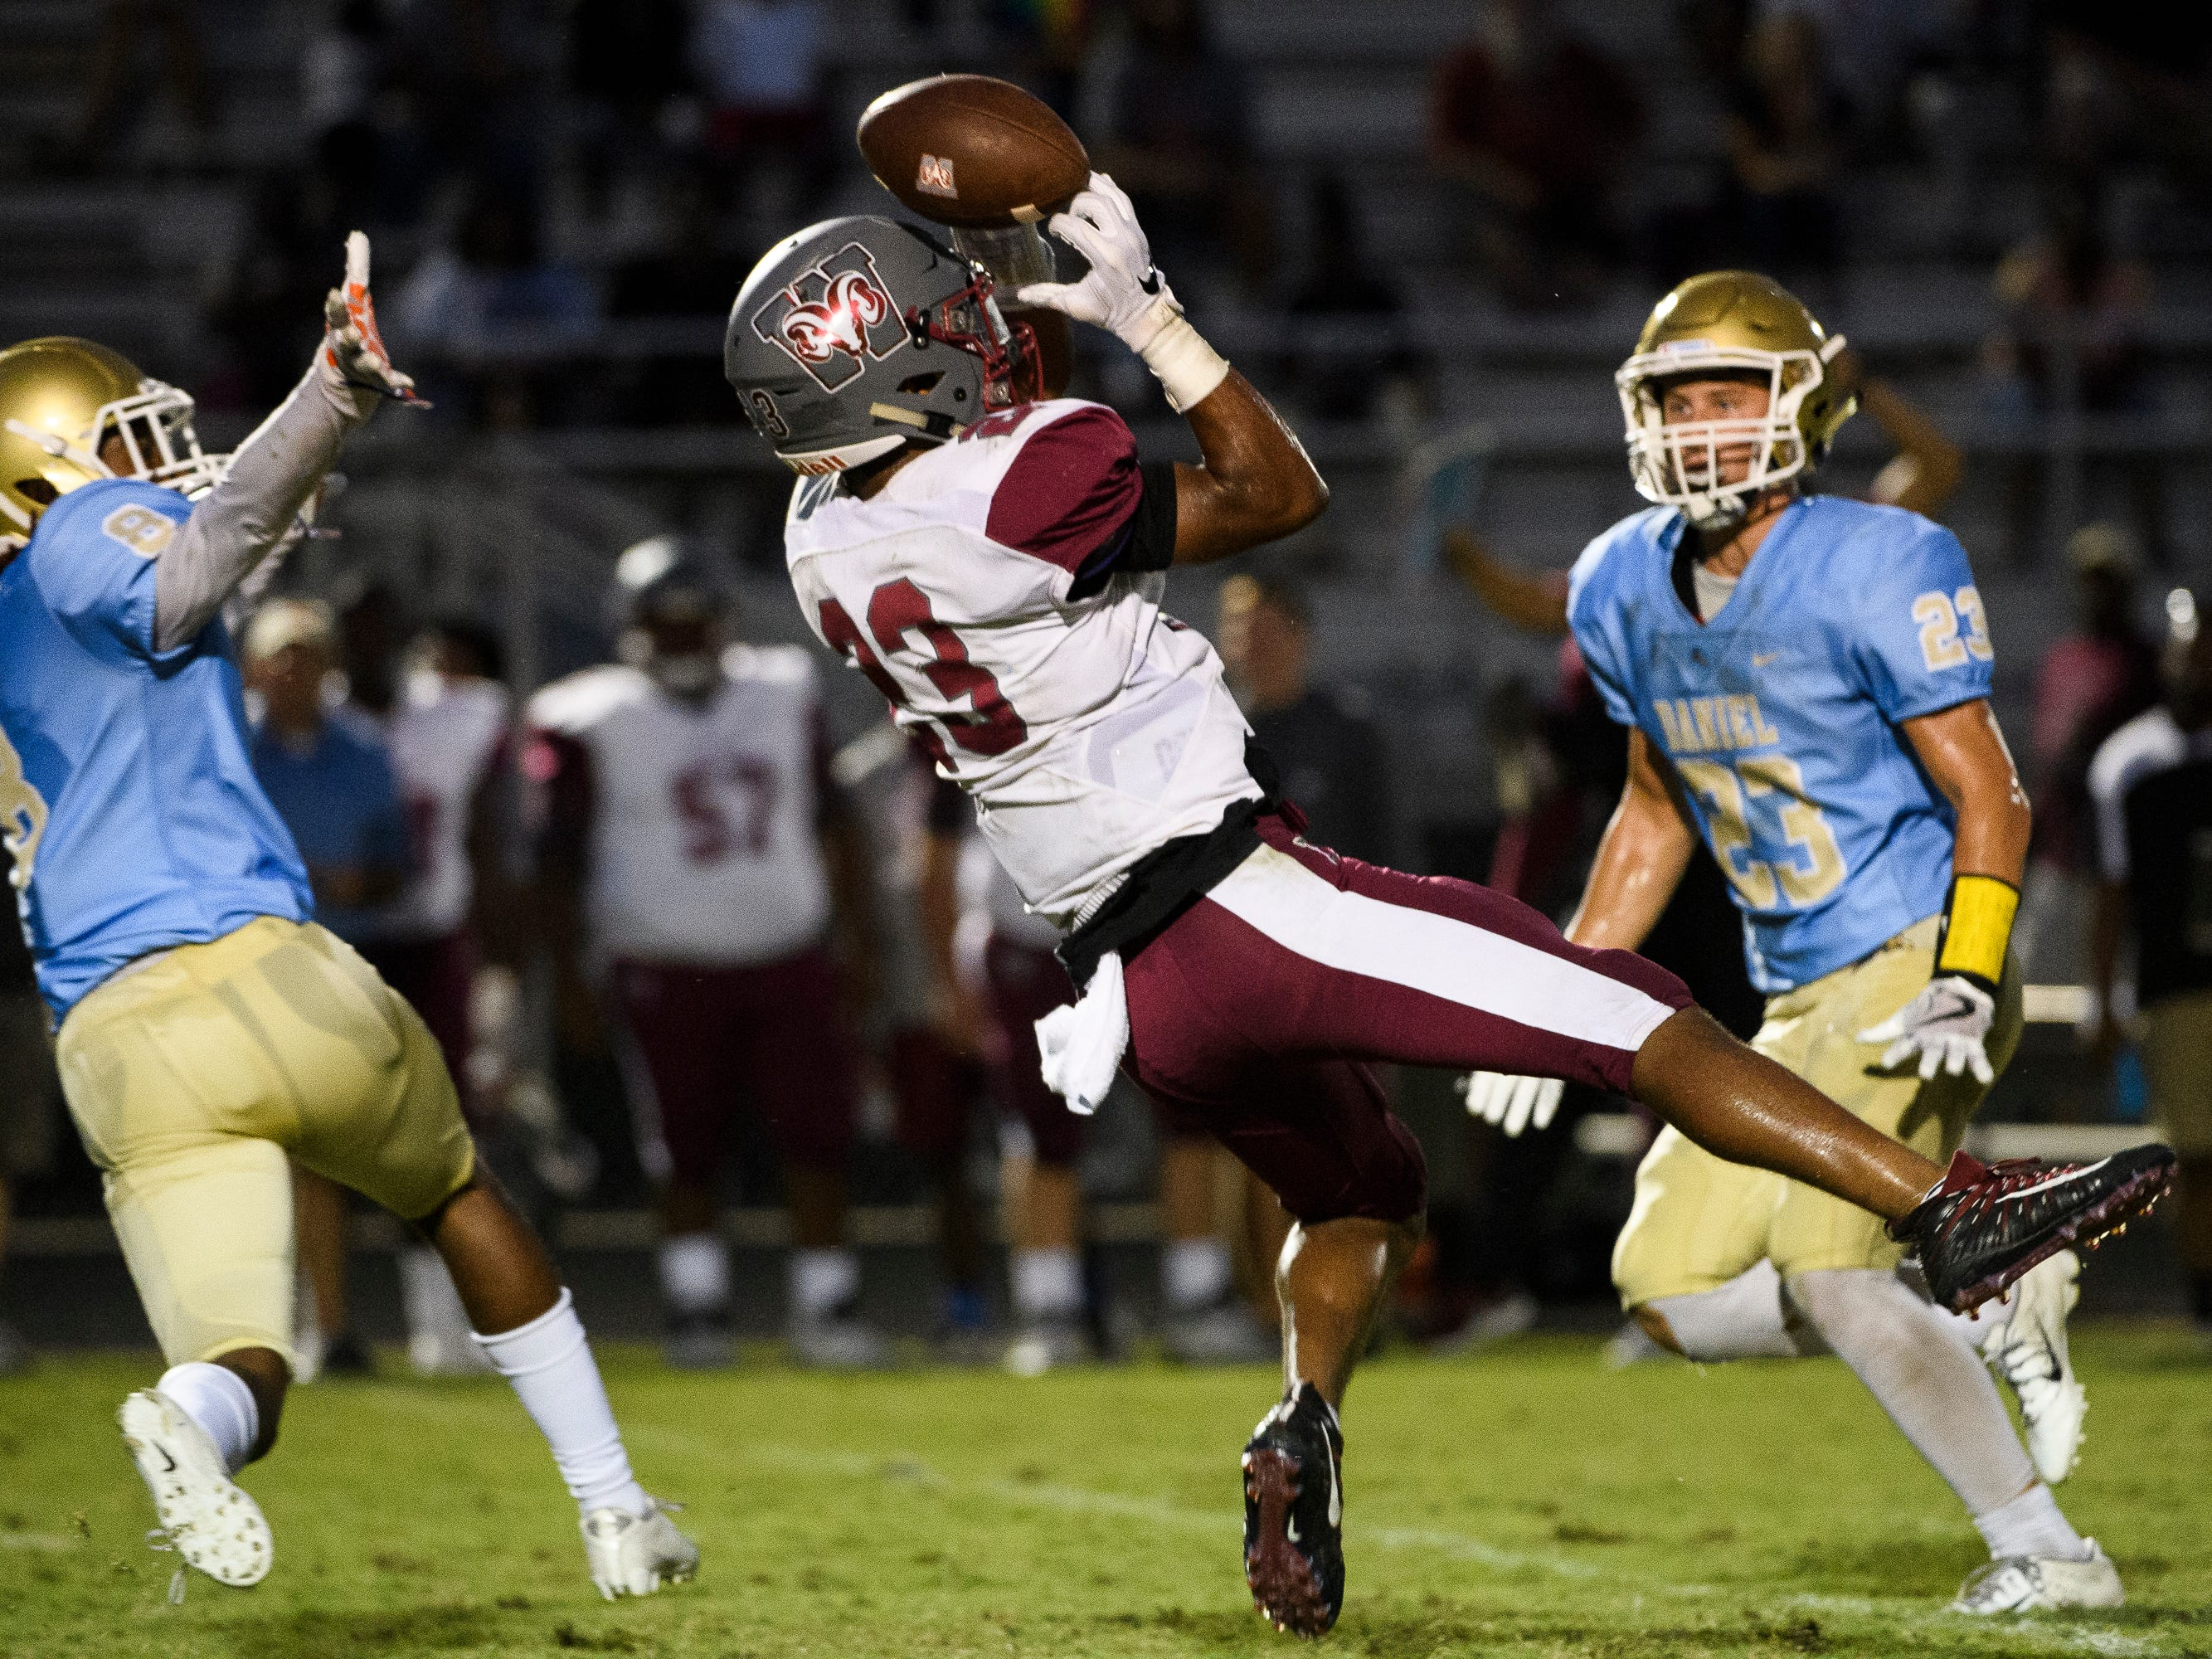 Westside's Tyson Lewis (13) attempts to catch the ball during their game against D.W. Daniel on Friday, Sept. 7, 2018.